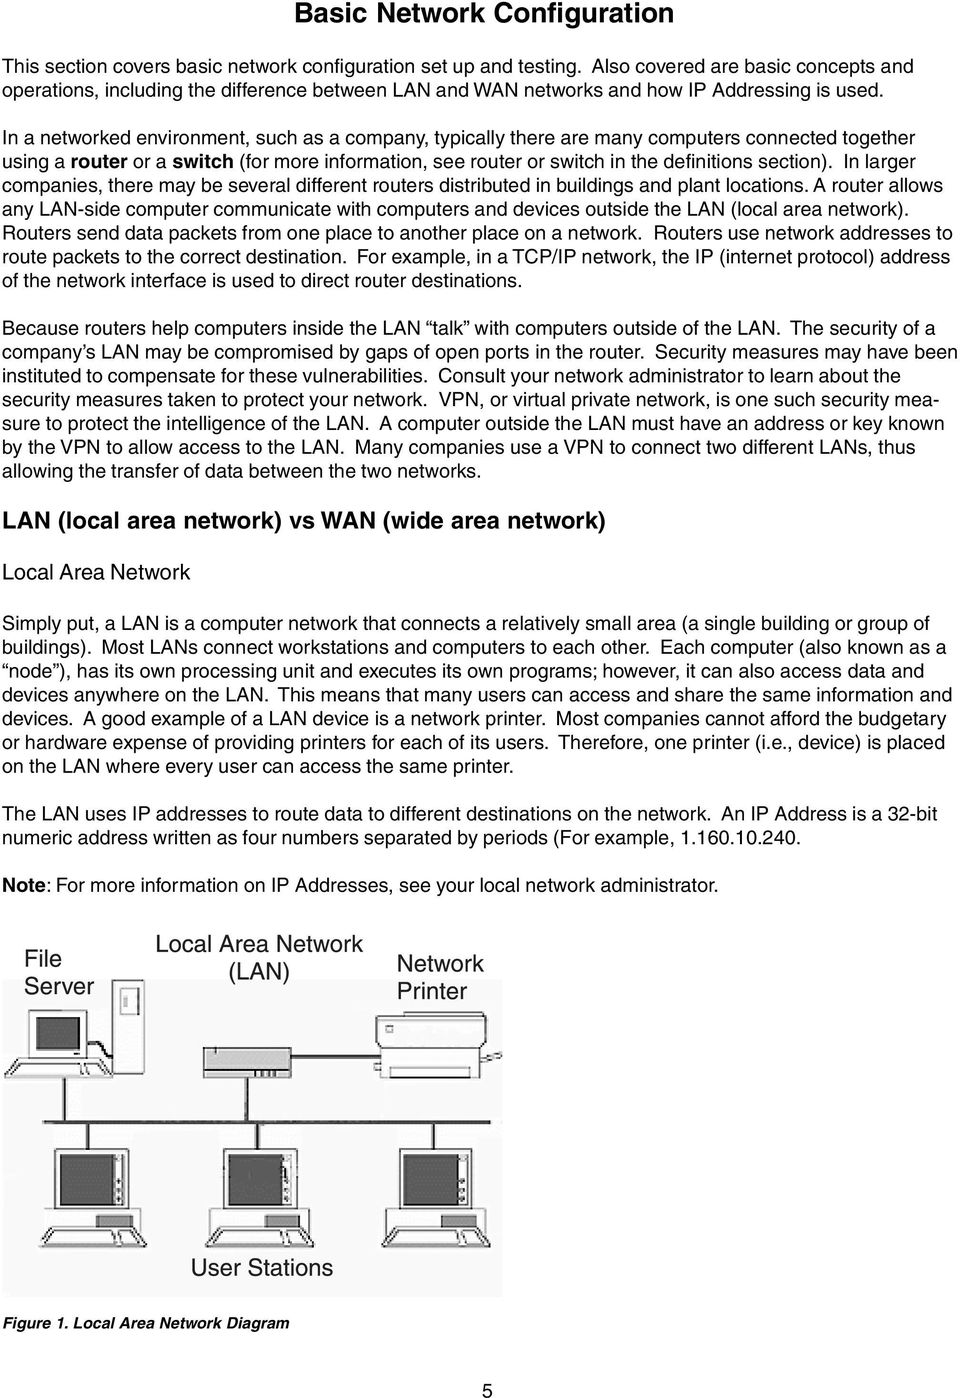 Basic Network Configuration - PDF